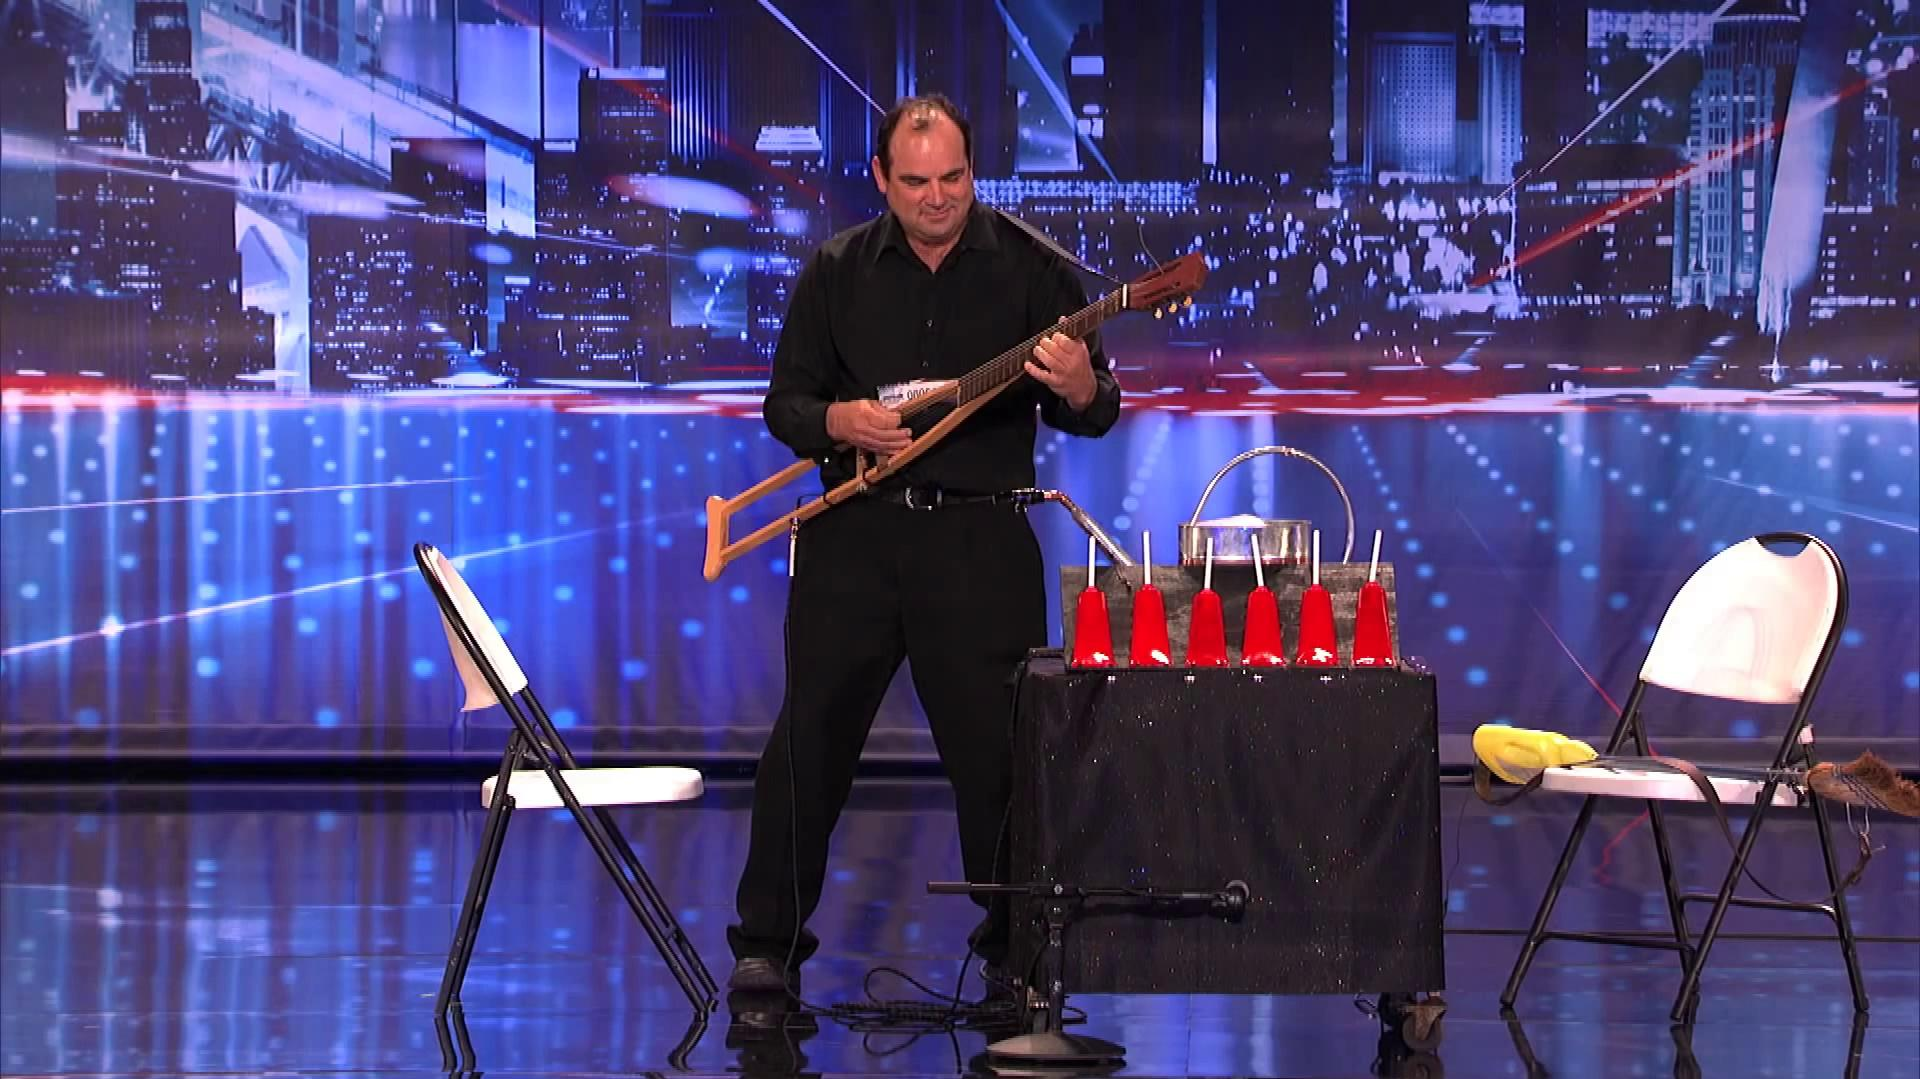 America's_Got_Talent_2013_-_Season_8_-_105_-_Abel_-_Musician_Plays_Instruments_Made_Out_of_Brooms_and_Crutches